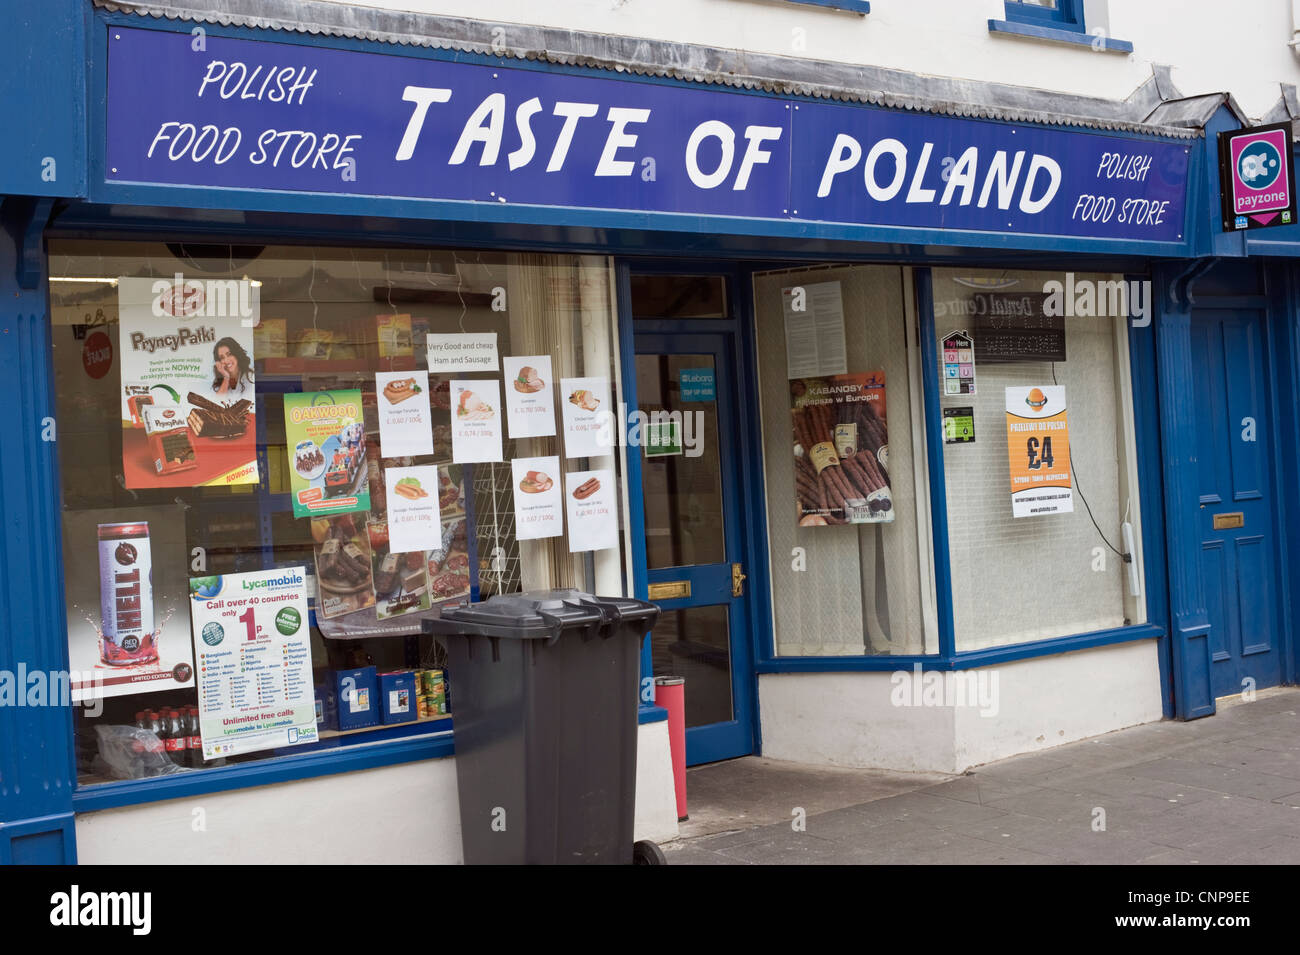 Taste Of Poland Polish Food Shop On High Street In Merthyr Tydfil Stock Photo Royalty Free